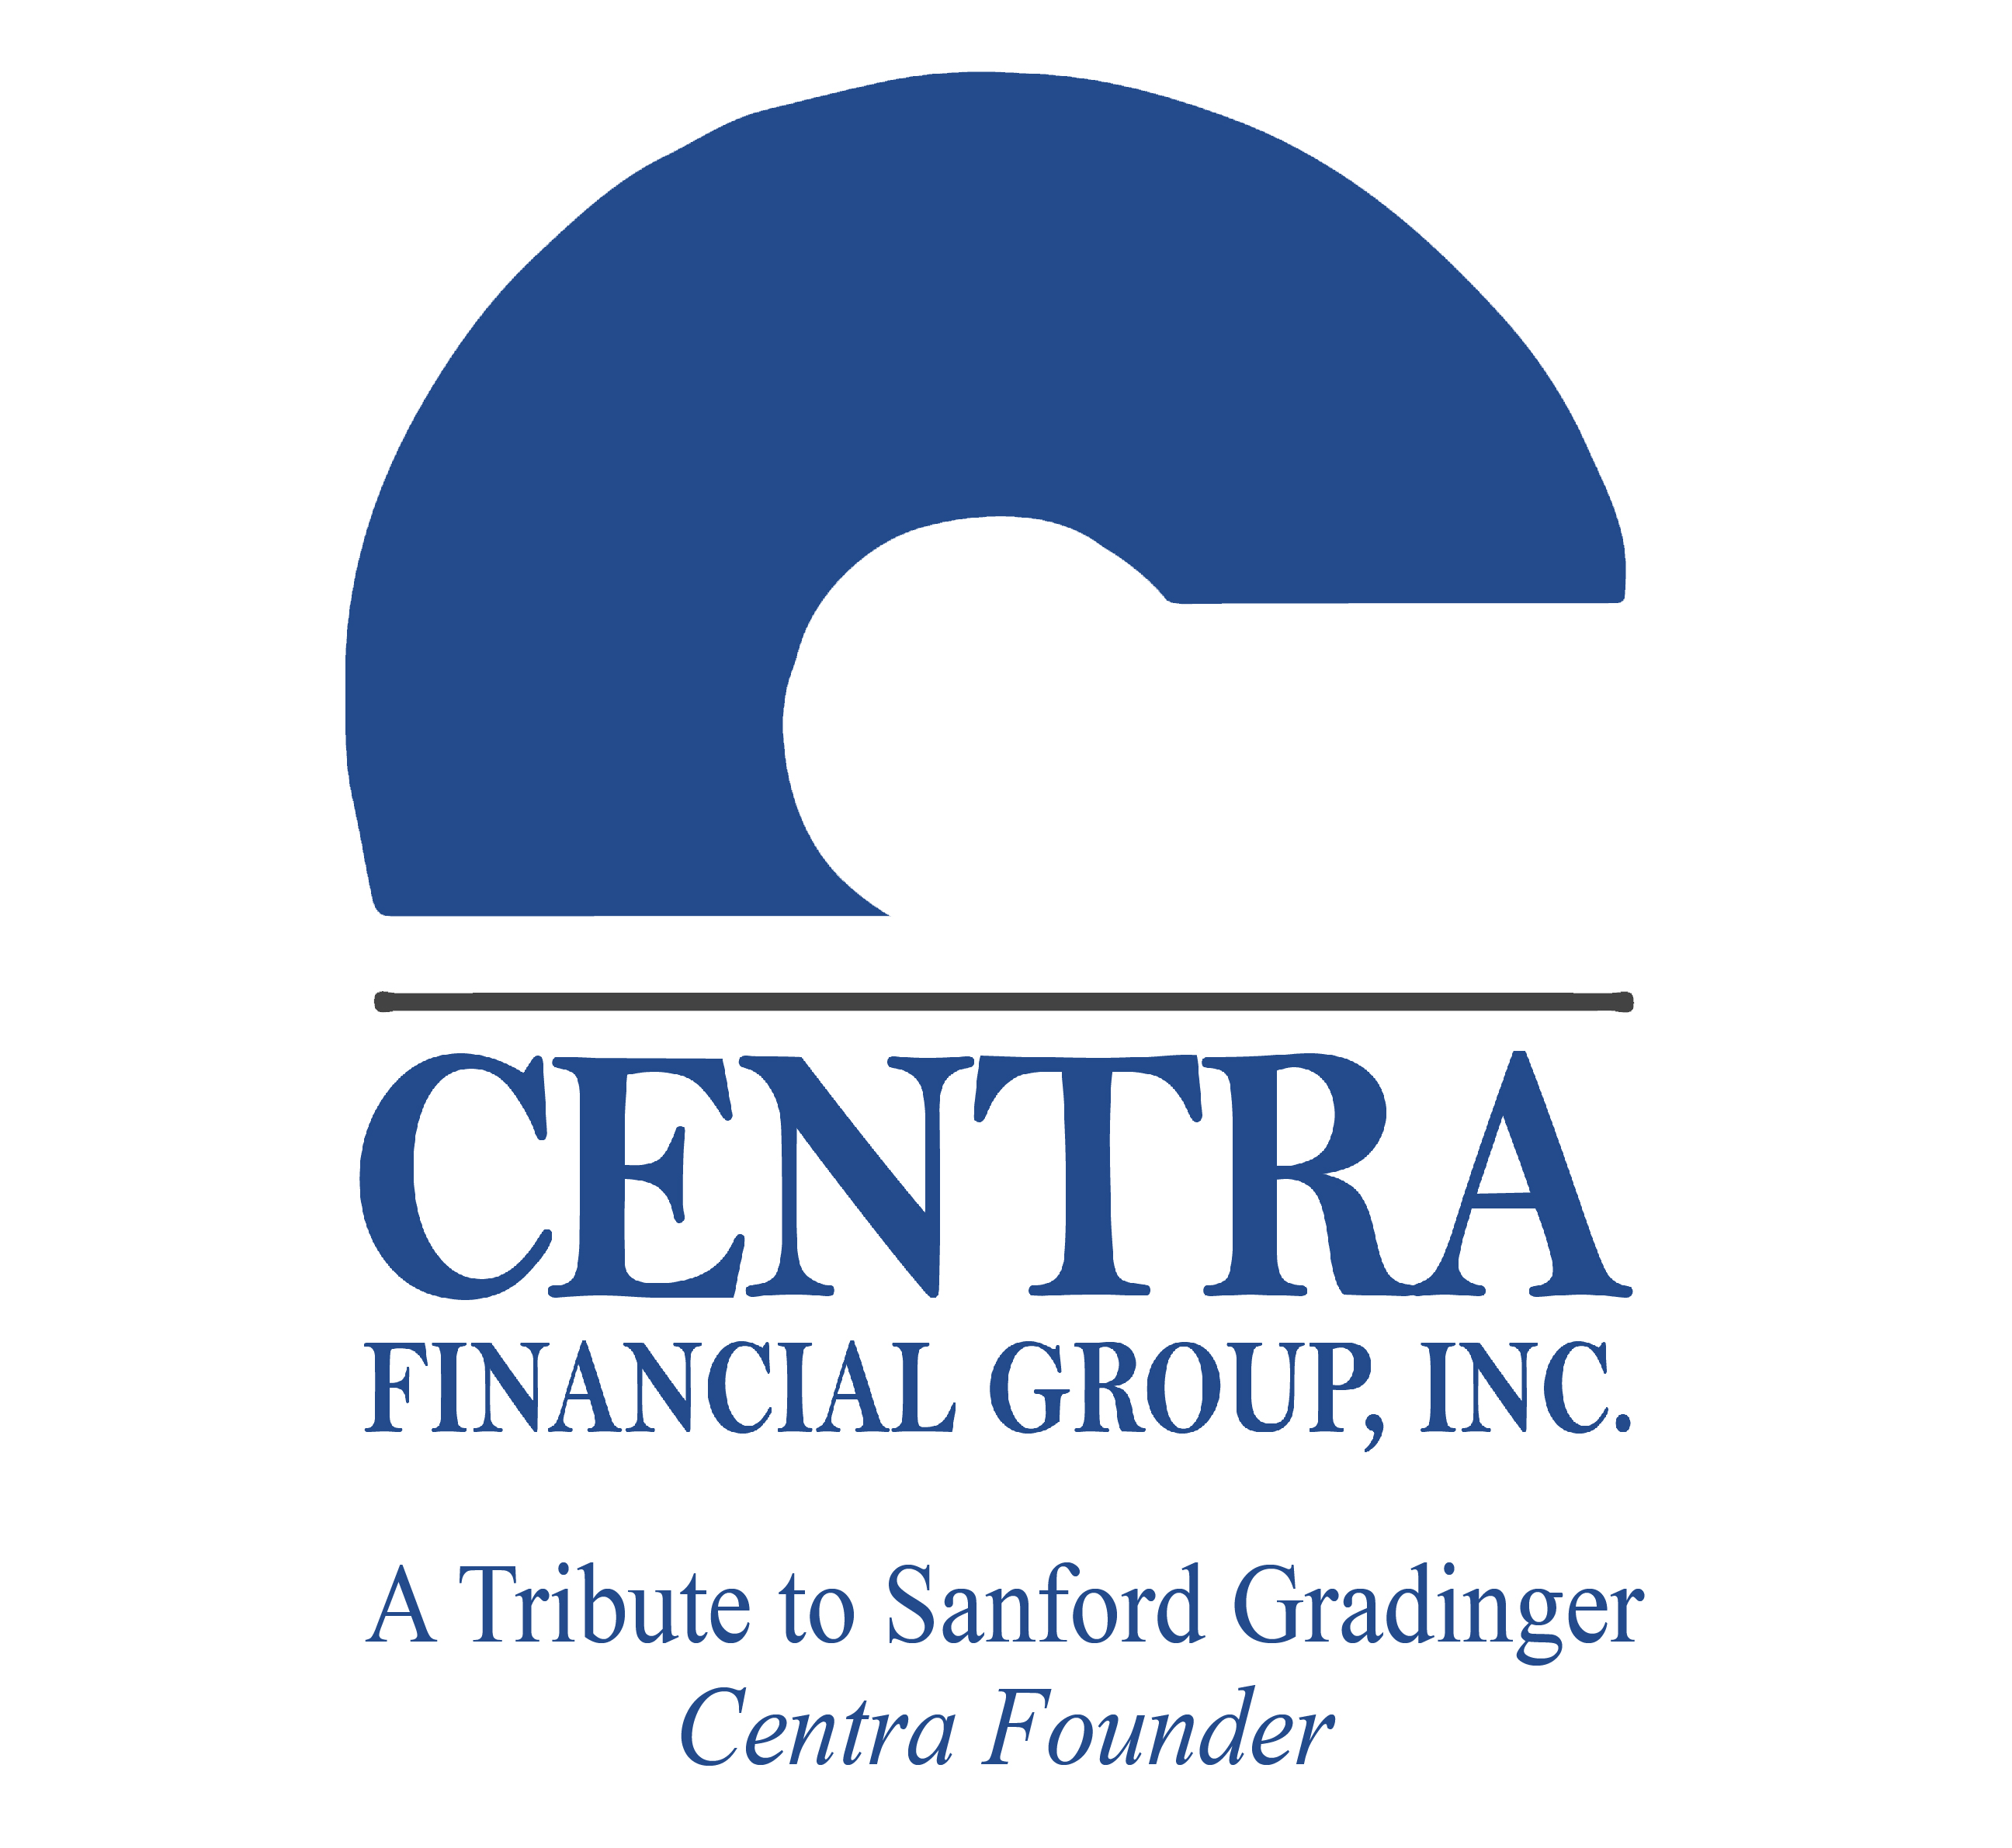 Centra Financial Group A Tribute to Sandford Gradinger, Centra Founder